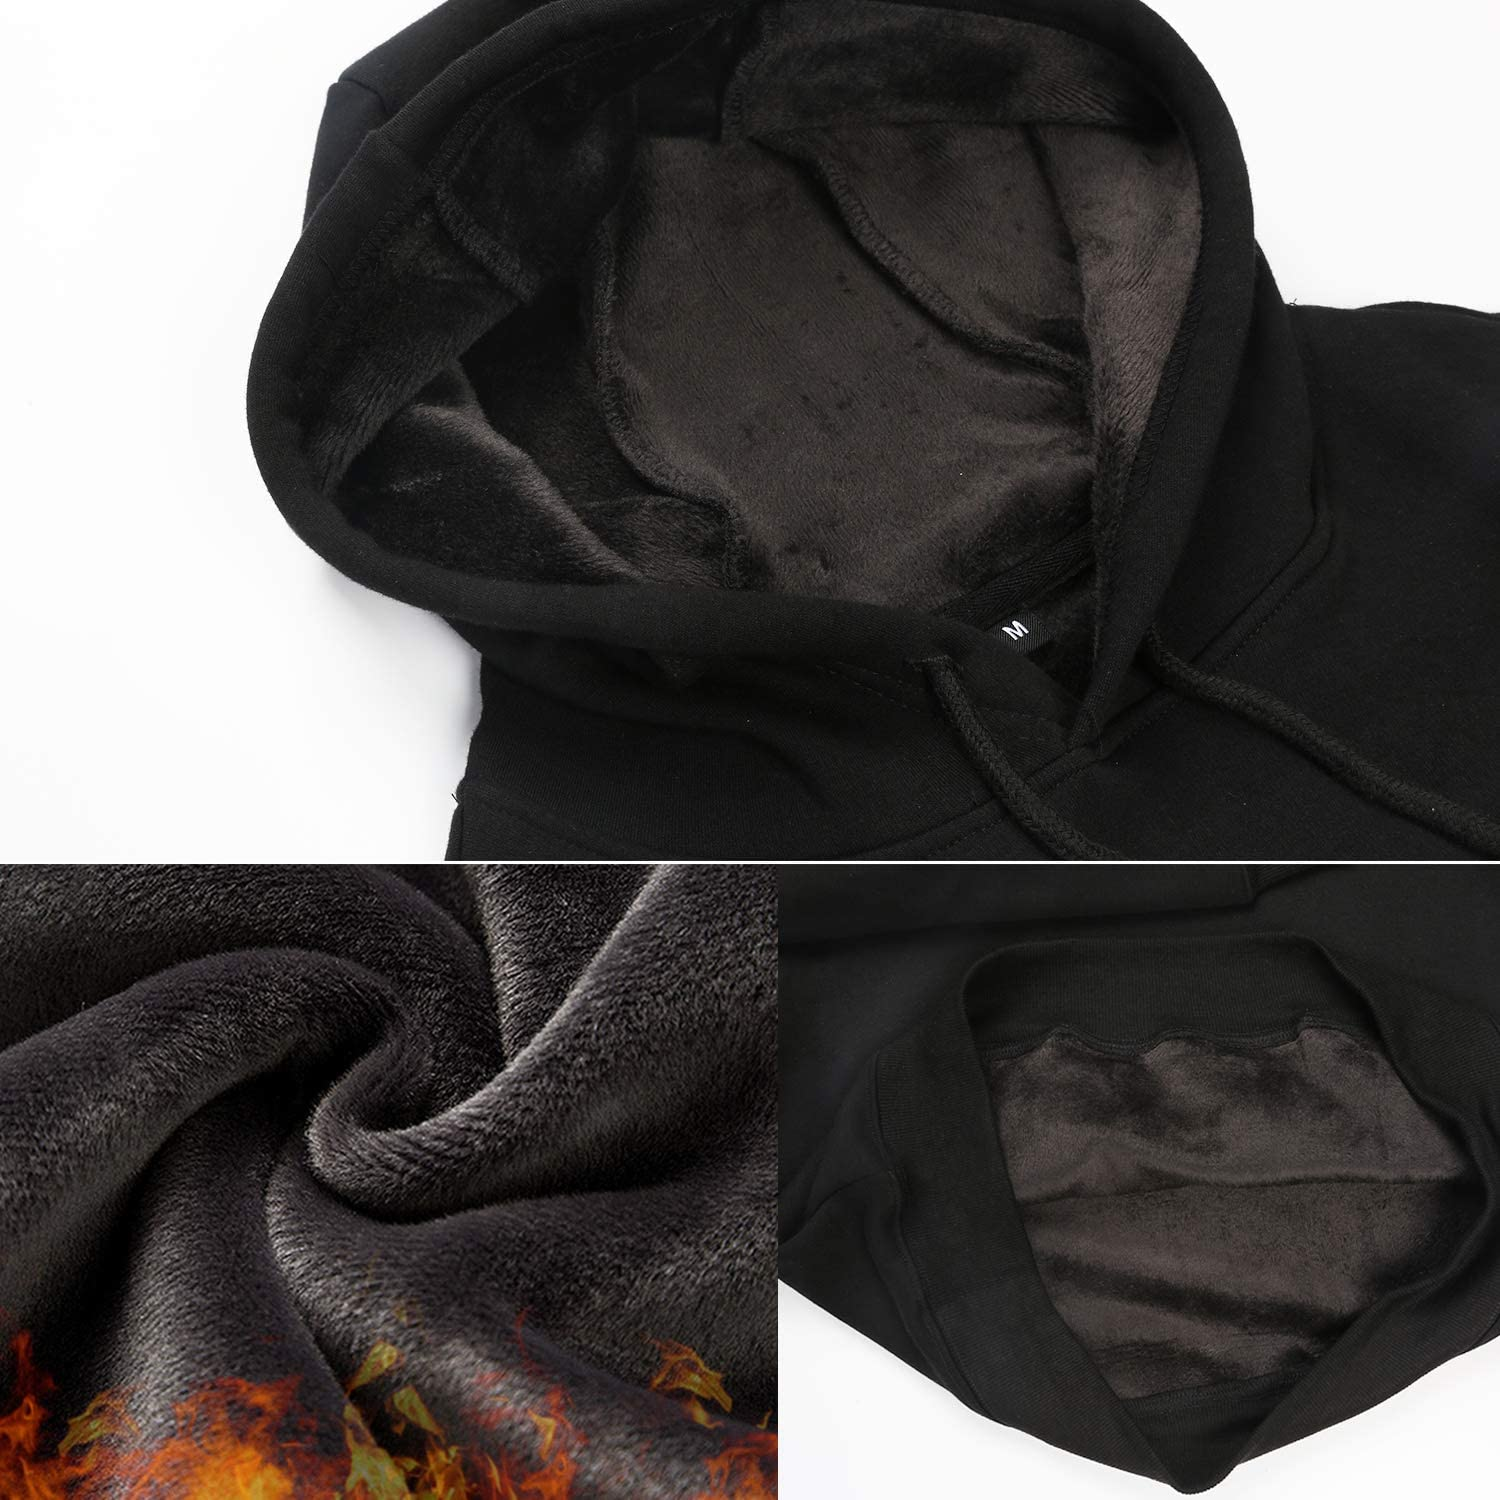 Mens Fleece Hoodie Galaxy Unicorn Wool Warm Soft Winter Gift Pullover Hooded Sweatshirt